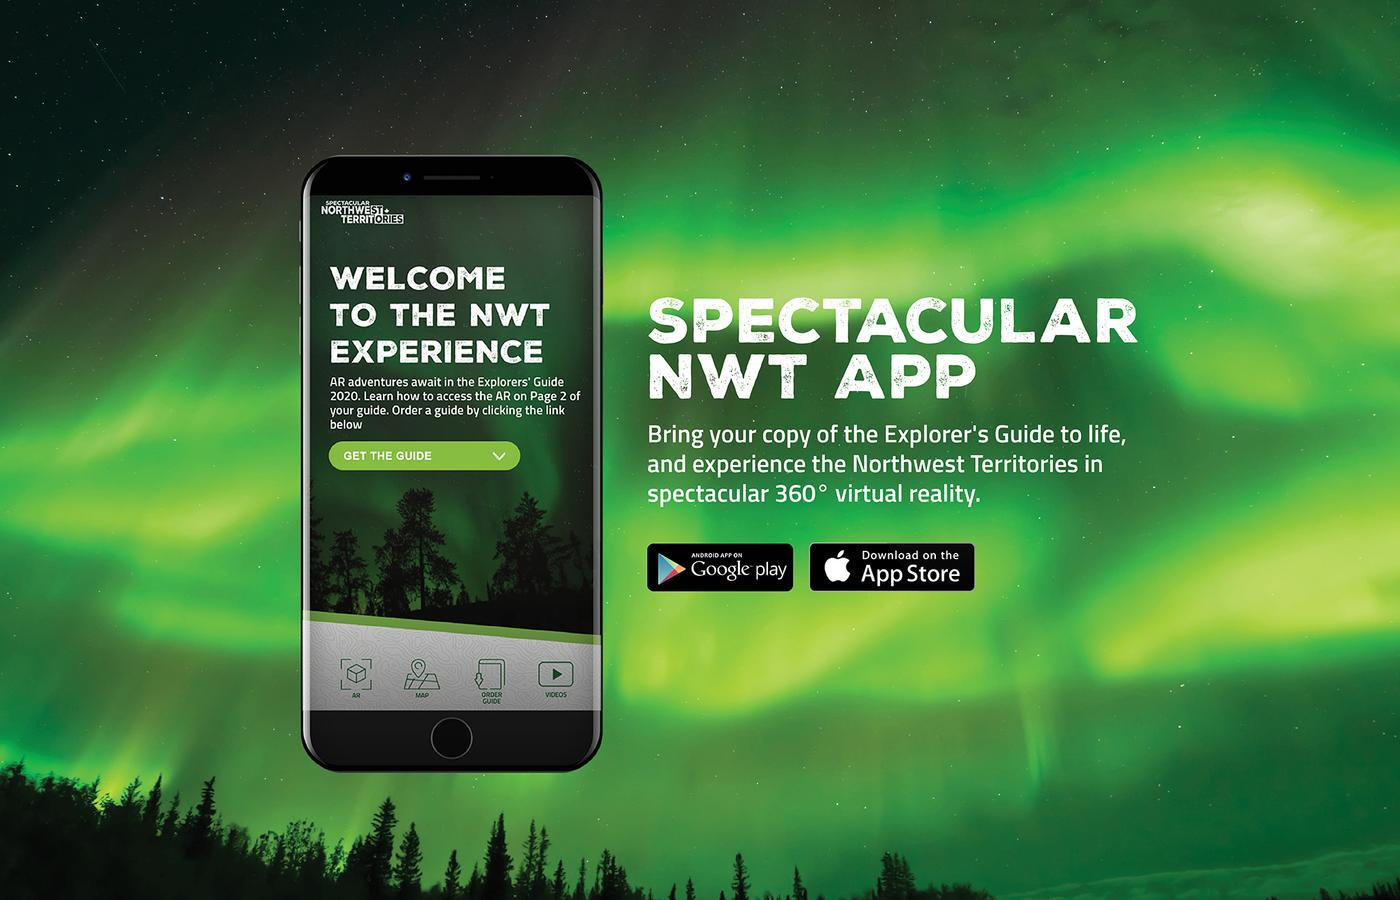 The nwt app allows you to view the explorers guide in 3D